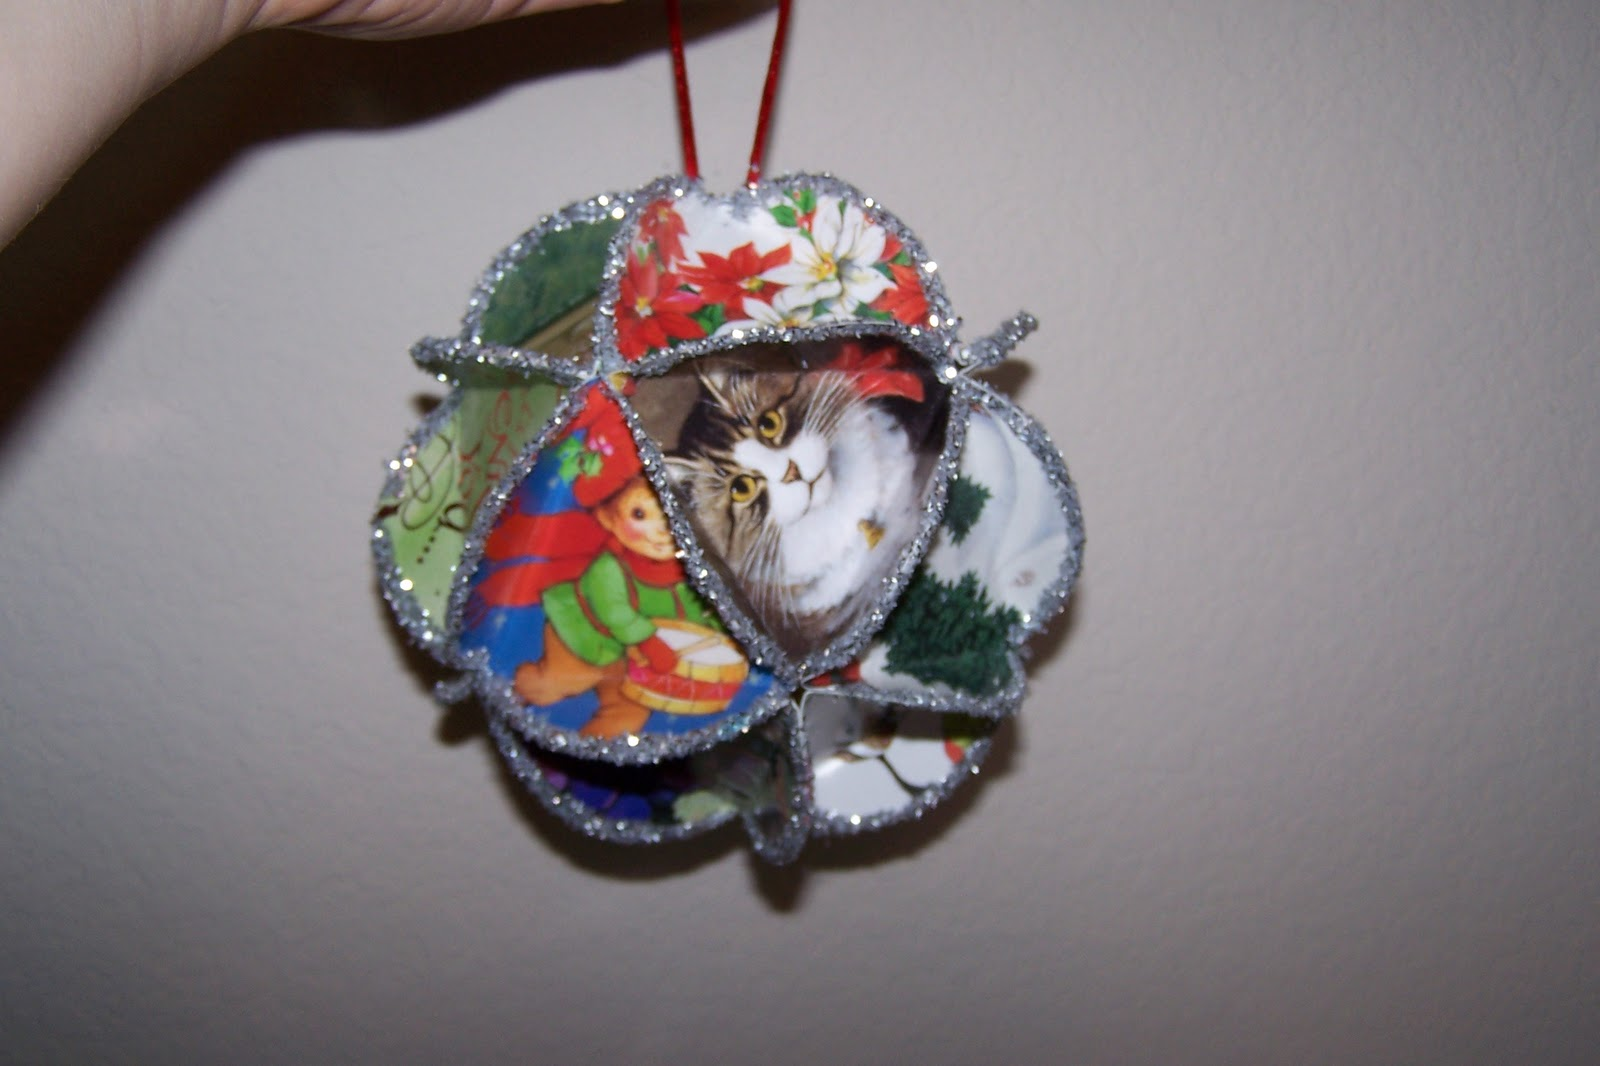 The princess and tot christmas ornament craft